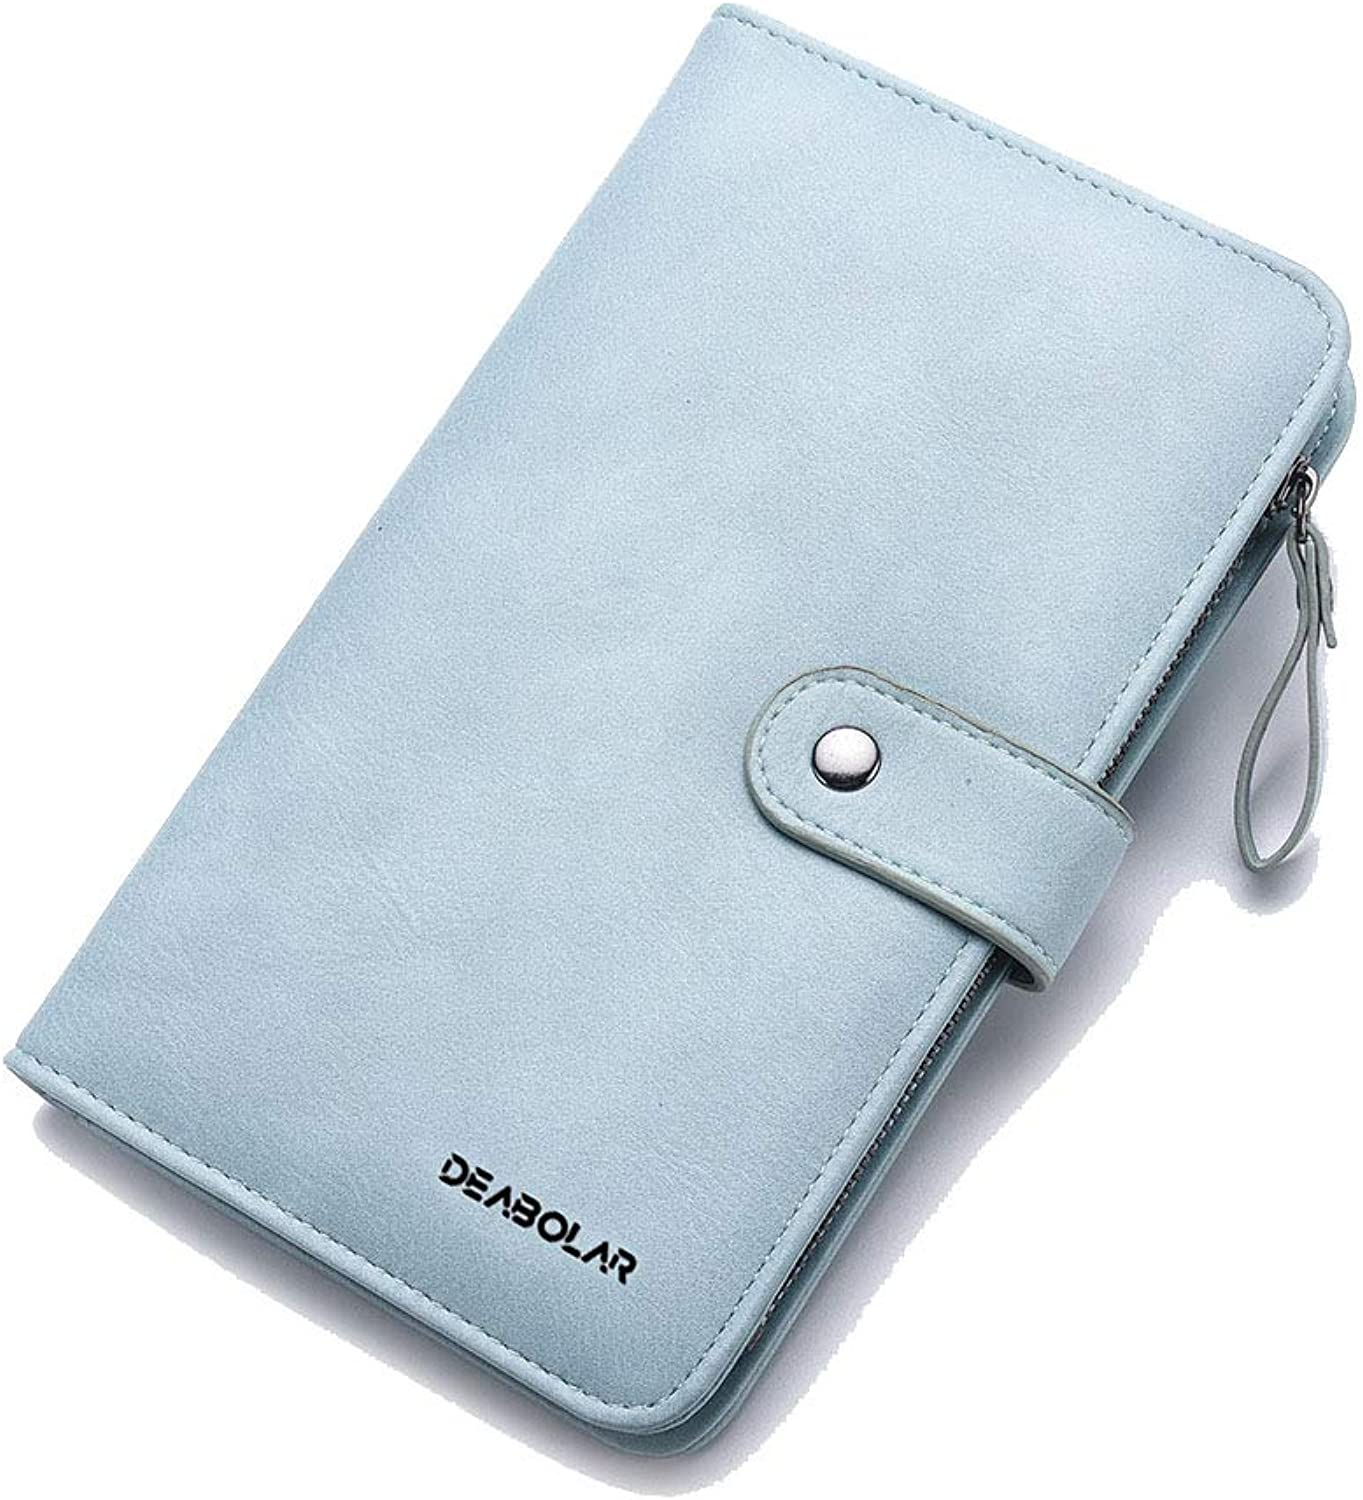 Women's Leather Wallet Long Wallet Passport Bag Multifunction Phone Case (color   Light bluee)